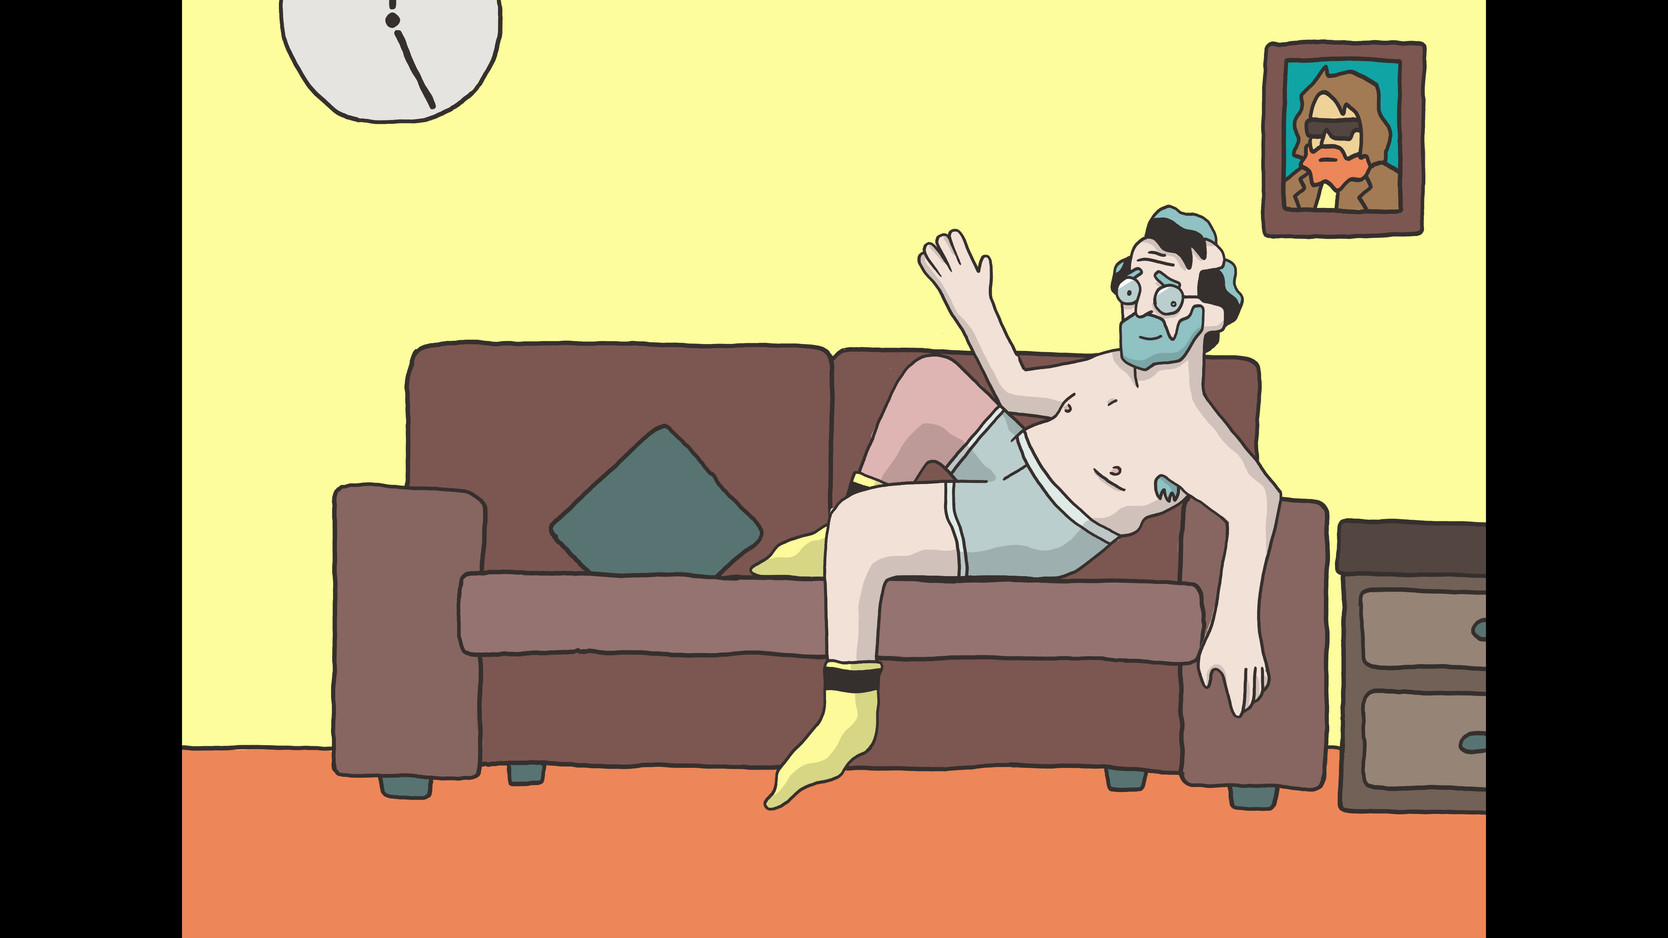 ENDING SEQUENCE TO SETTEE. A PLAYFUL END TO AN EMOTIVE VIDEO.